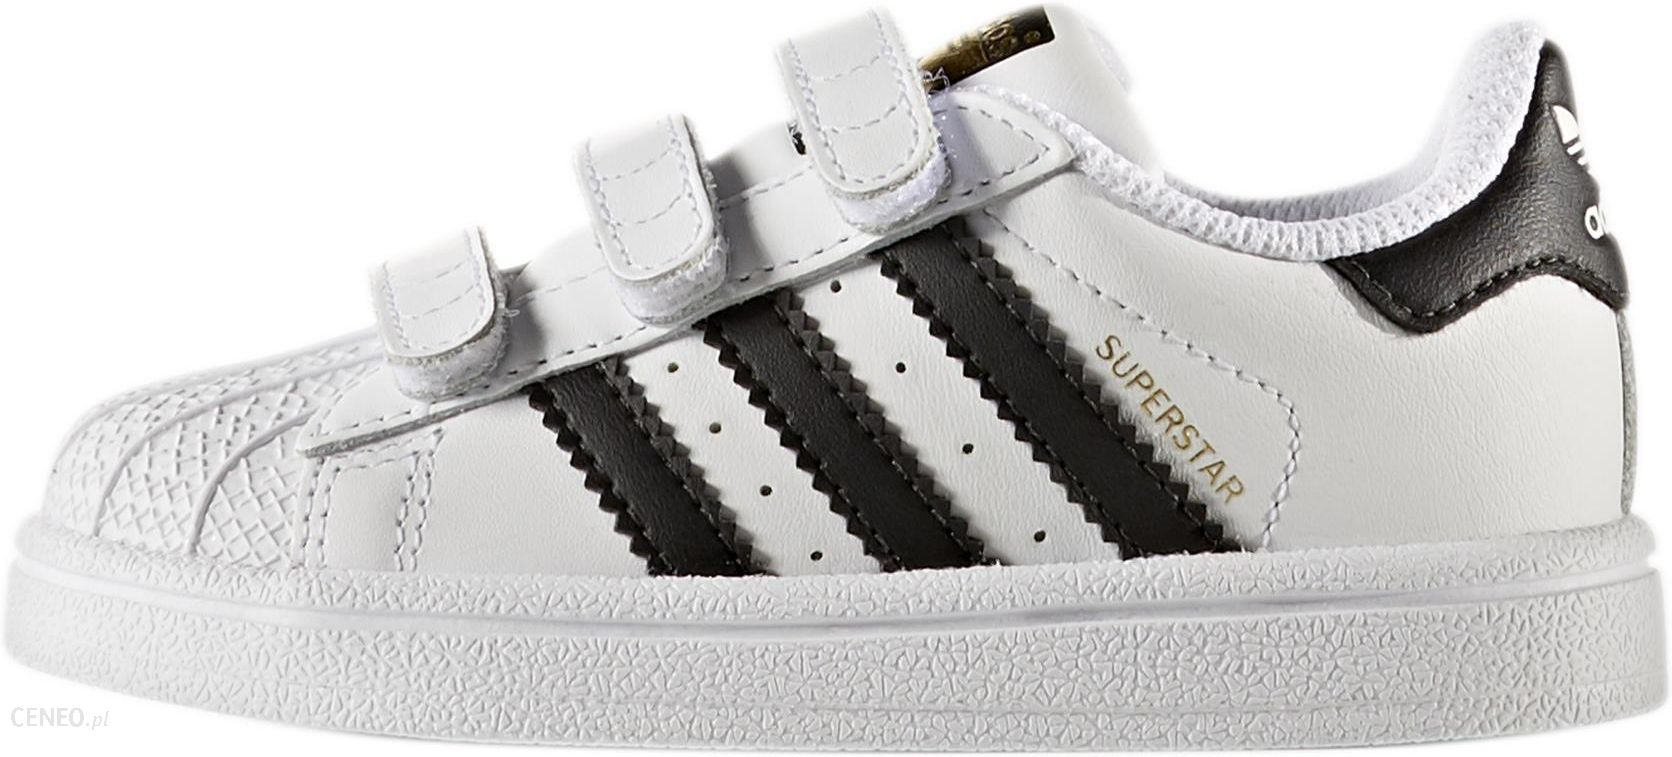 adidas spo superstar tt adidas spo superstar tt